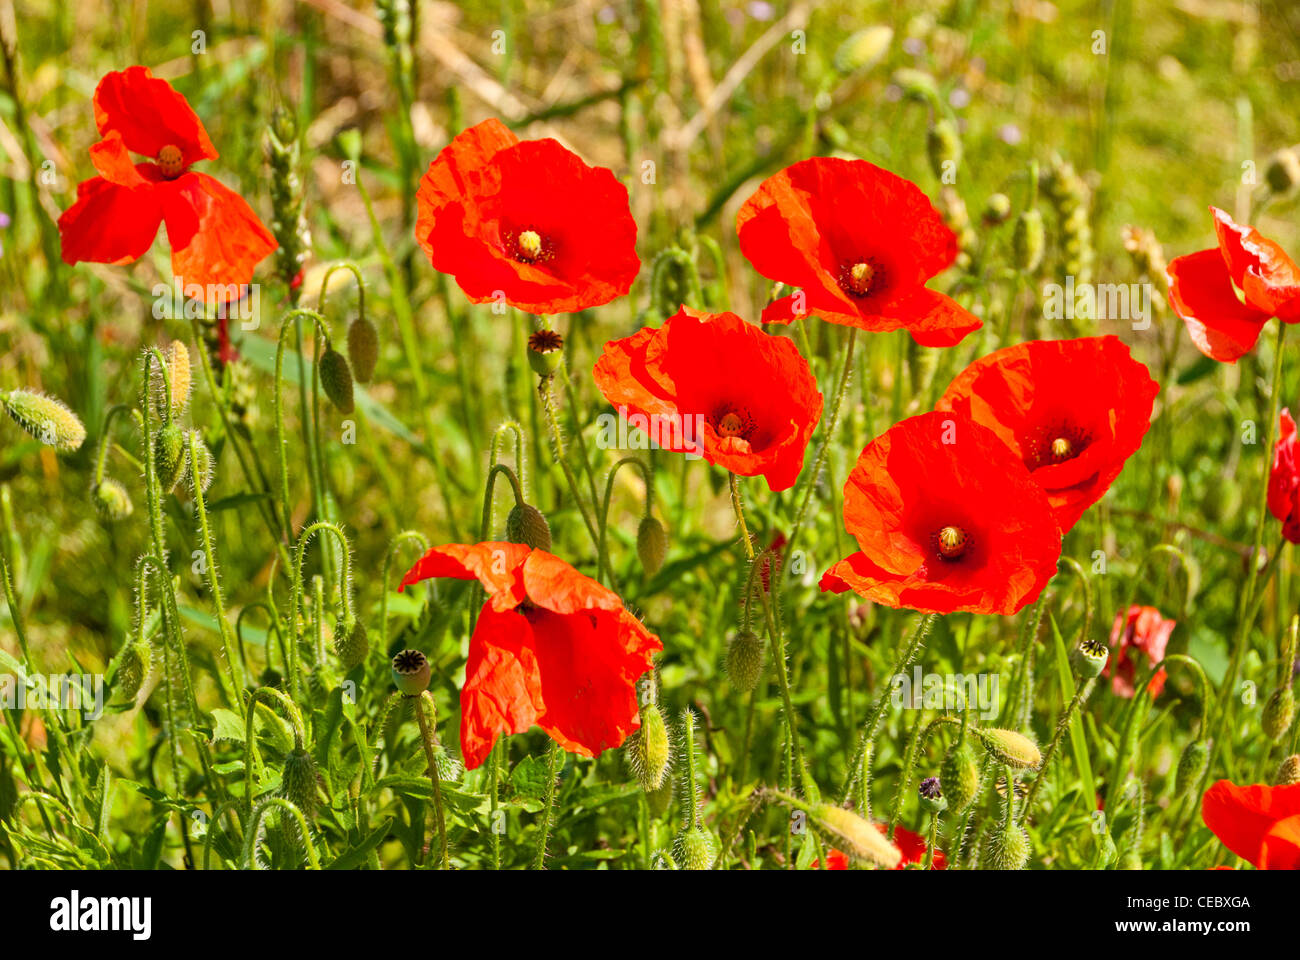 Poppies in a field - Stock Image